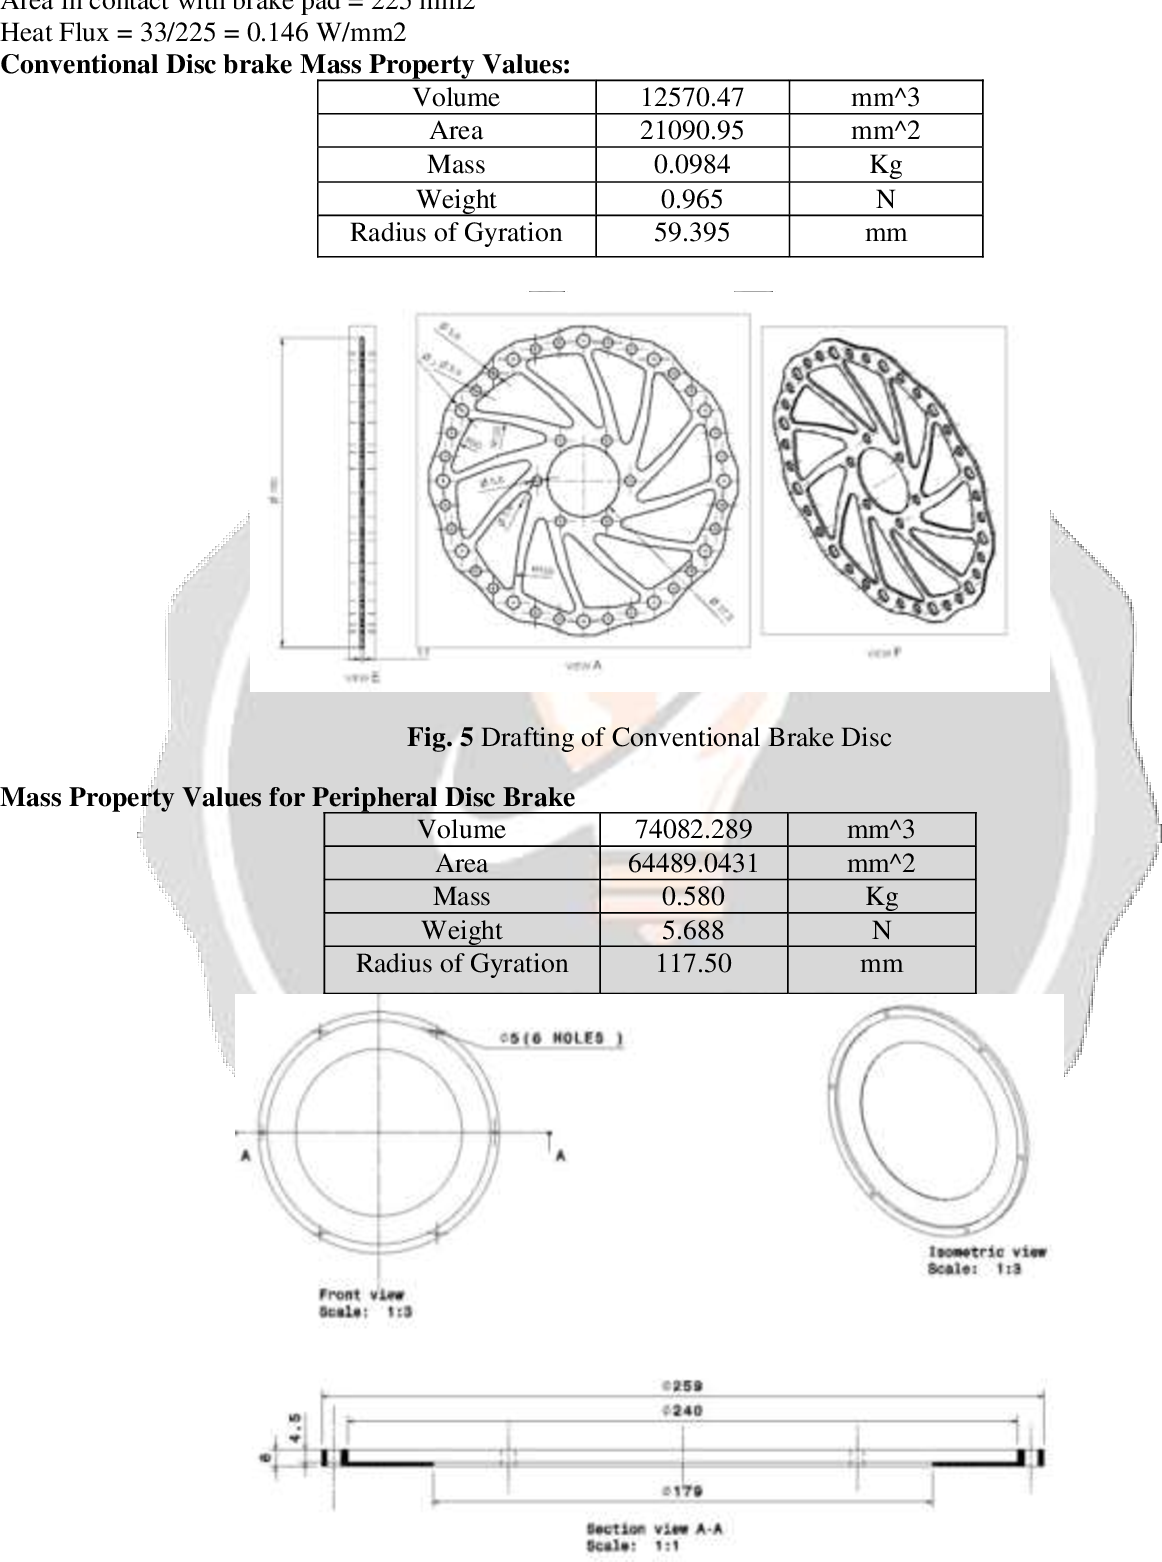 Design Analysis And Characterisation Of Peripheral Disc Brake System For Motor Cycle Front Wheel Semantic Scholar